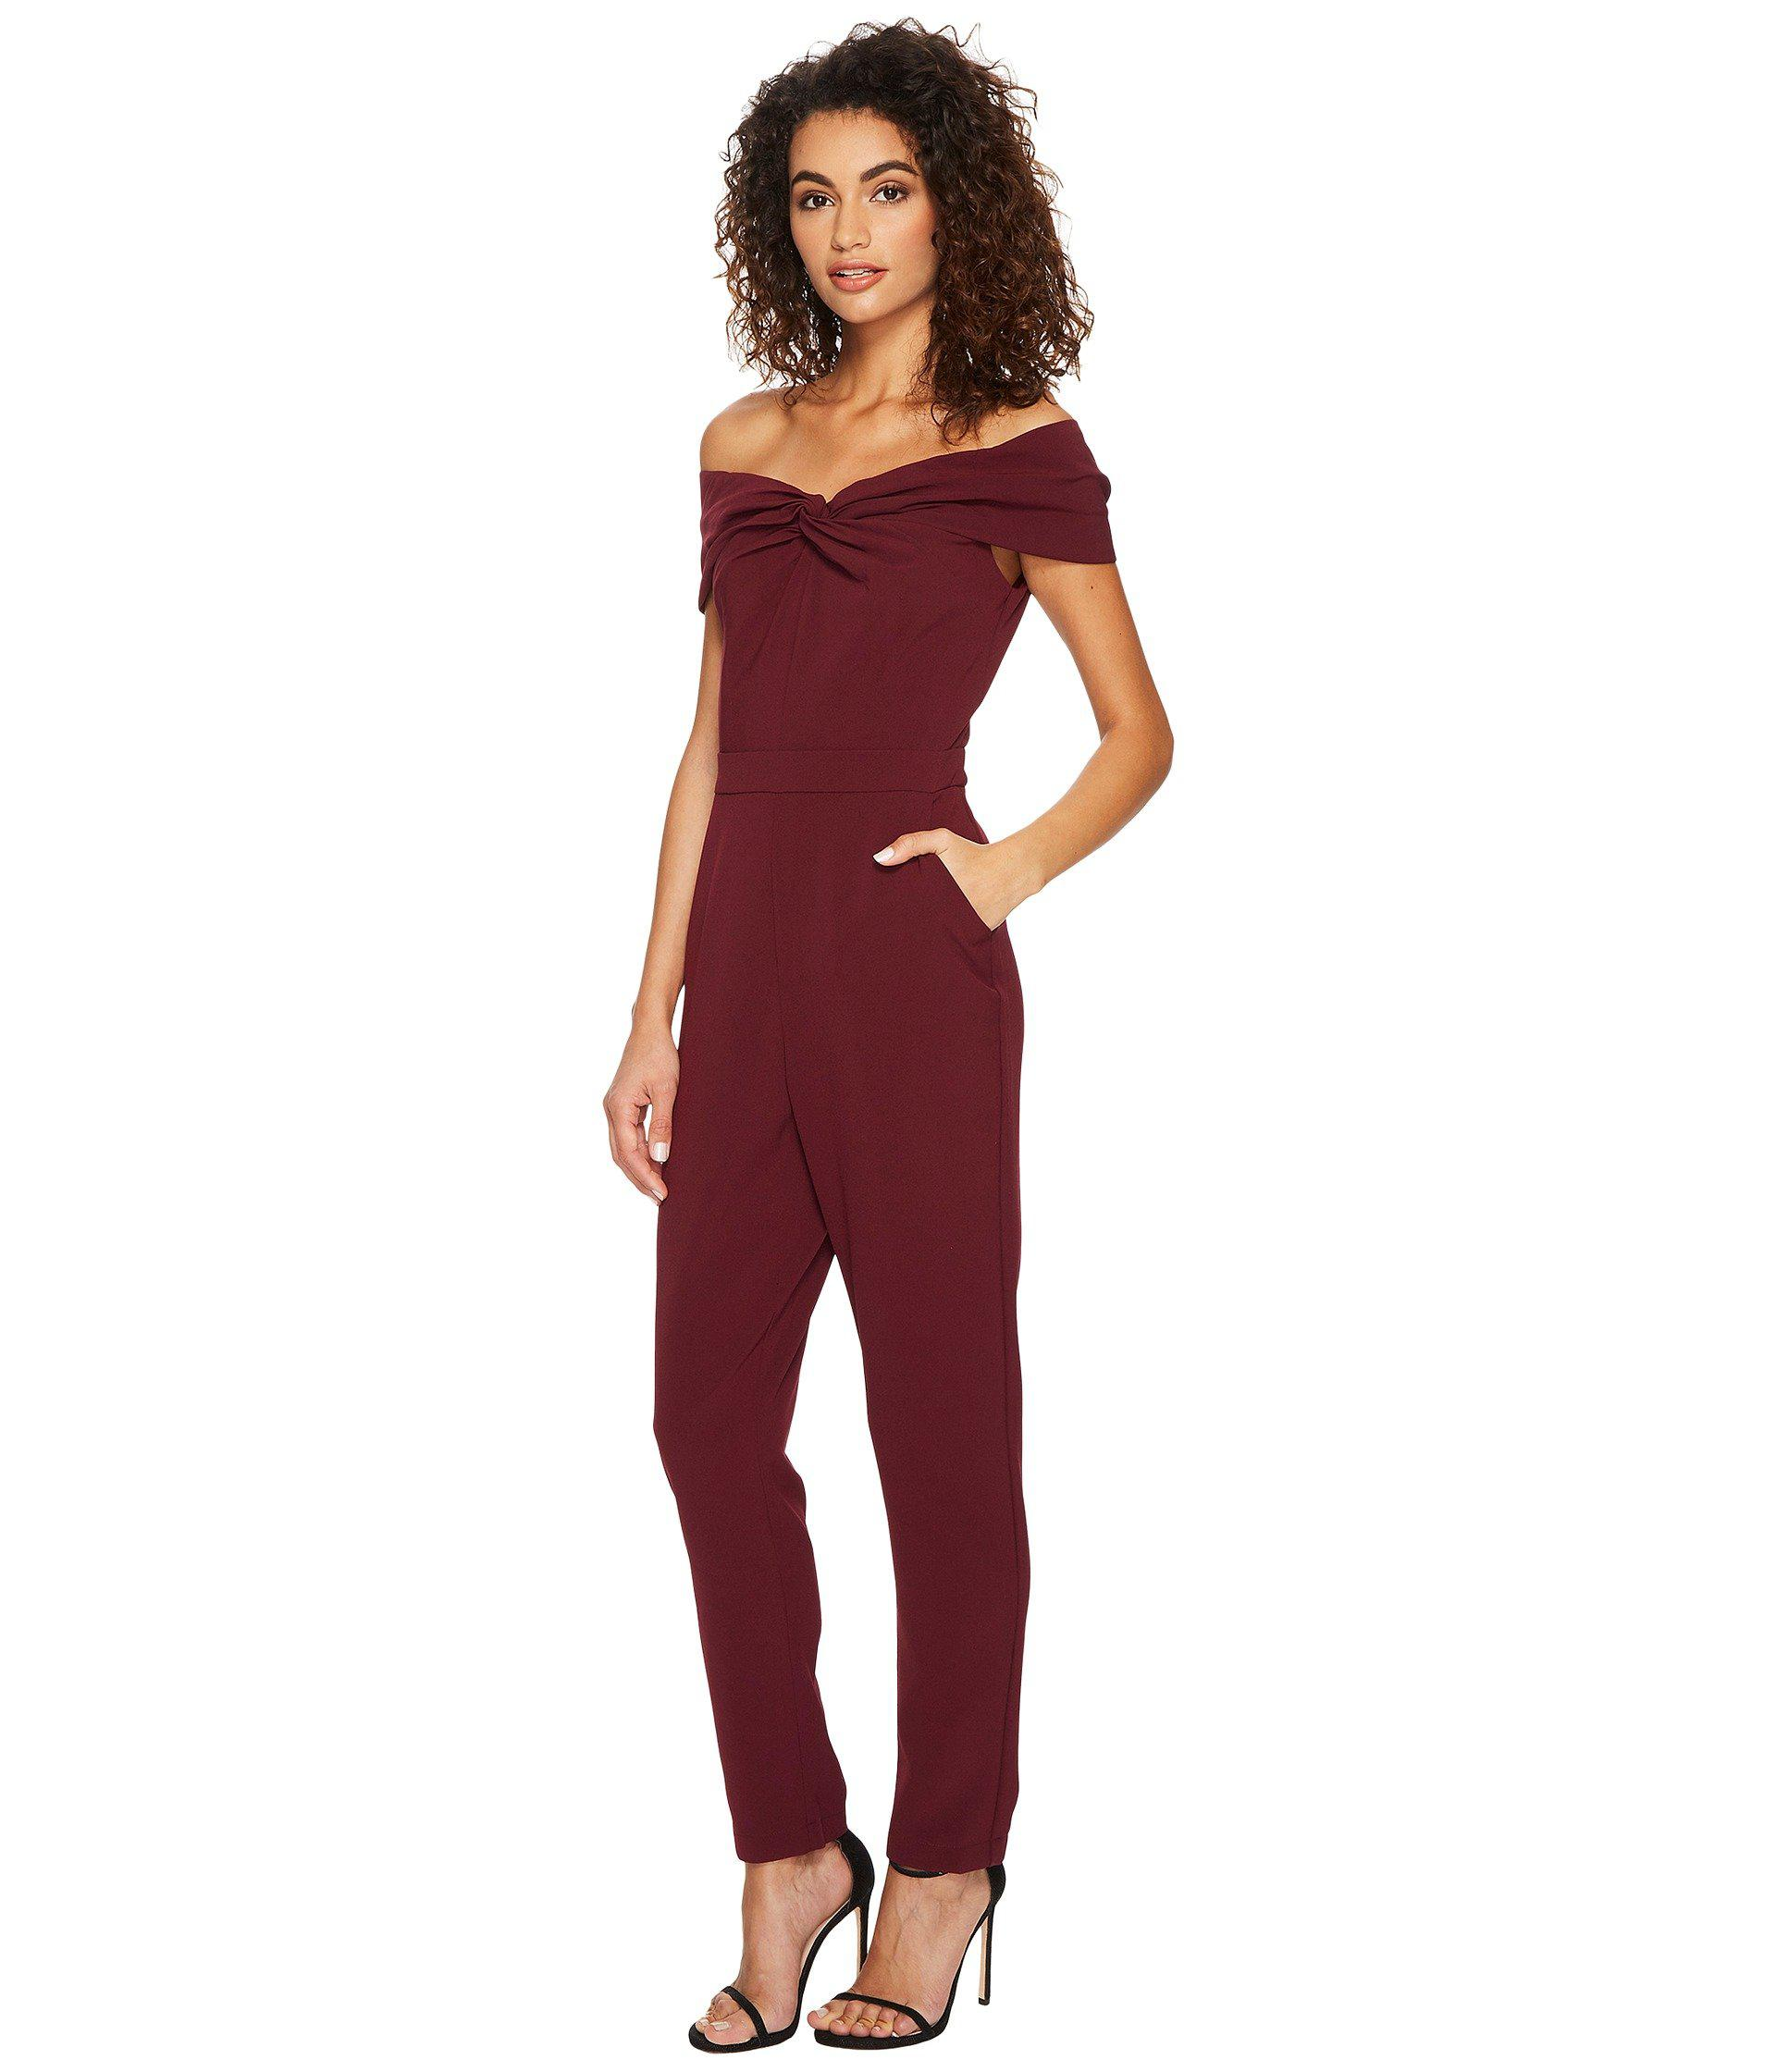 509f86aeaac Lyst - Adelyn Rae Karlie Jumpsuit in Red